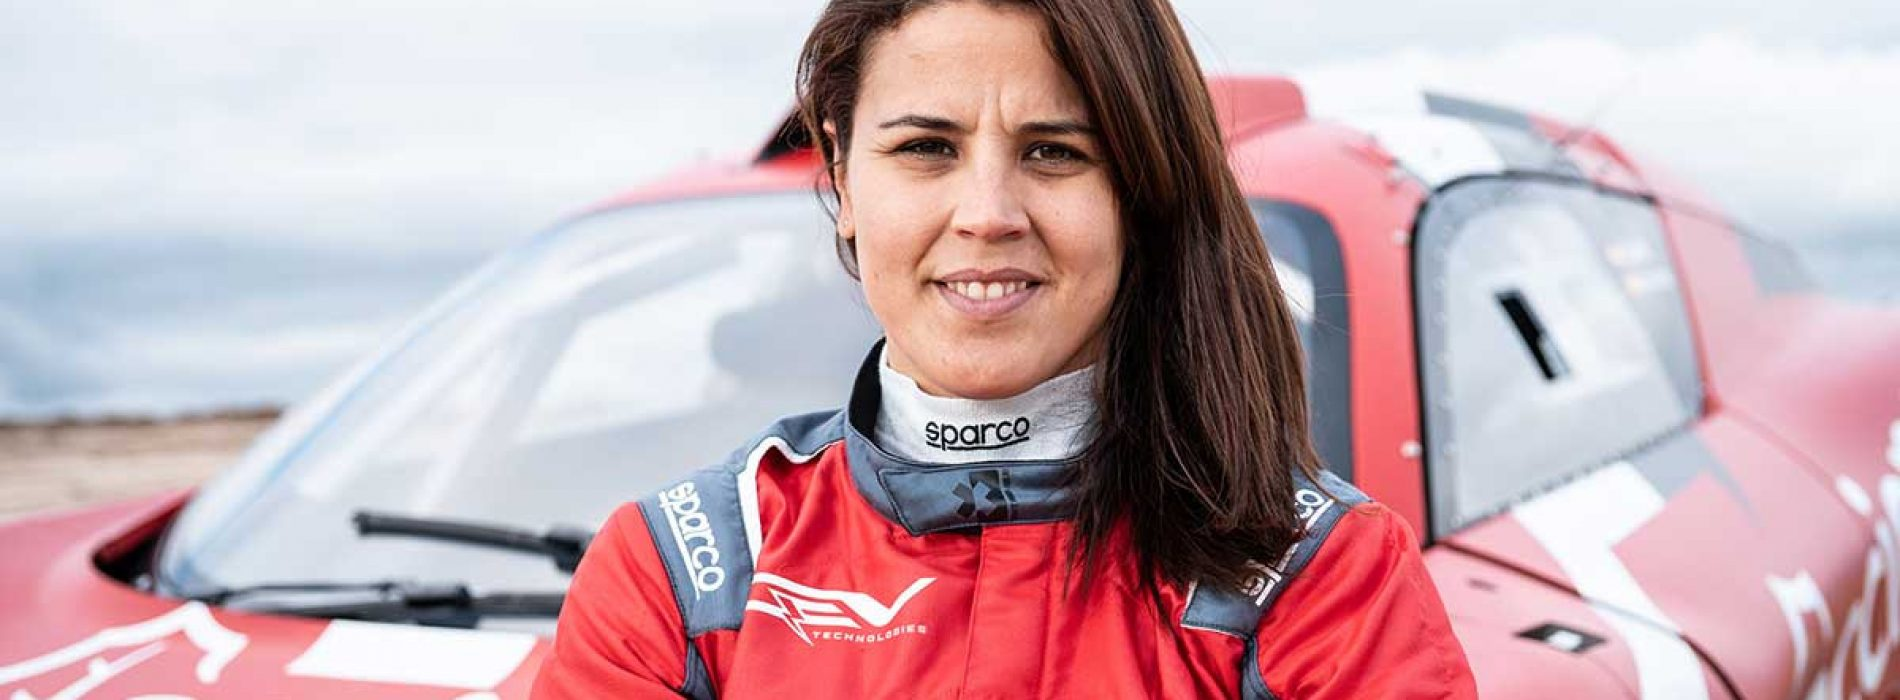 Laia Sanz competes in Extreme E Series with ACCIONA Sainz XE Team- partnered with Race 2 Road QEV Technologies